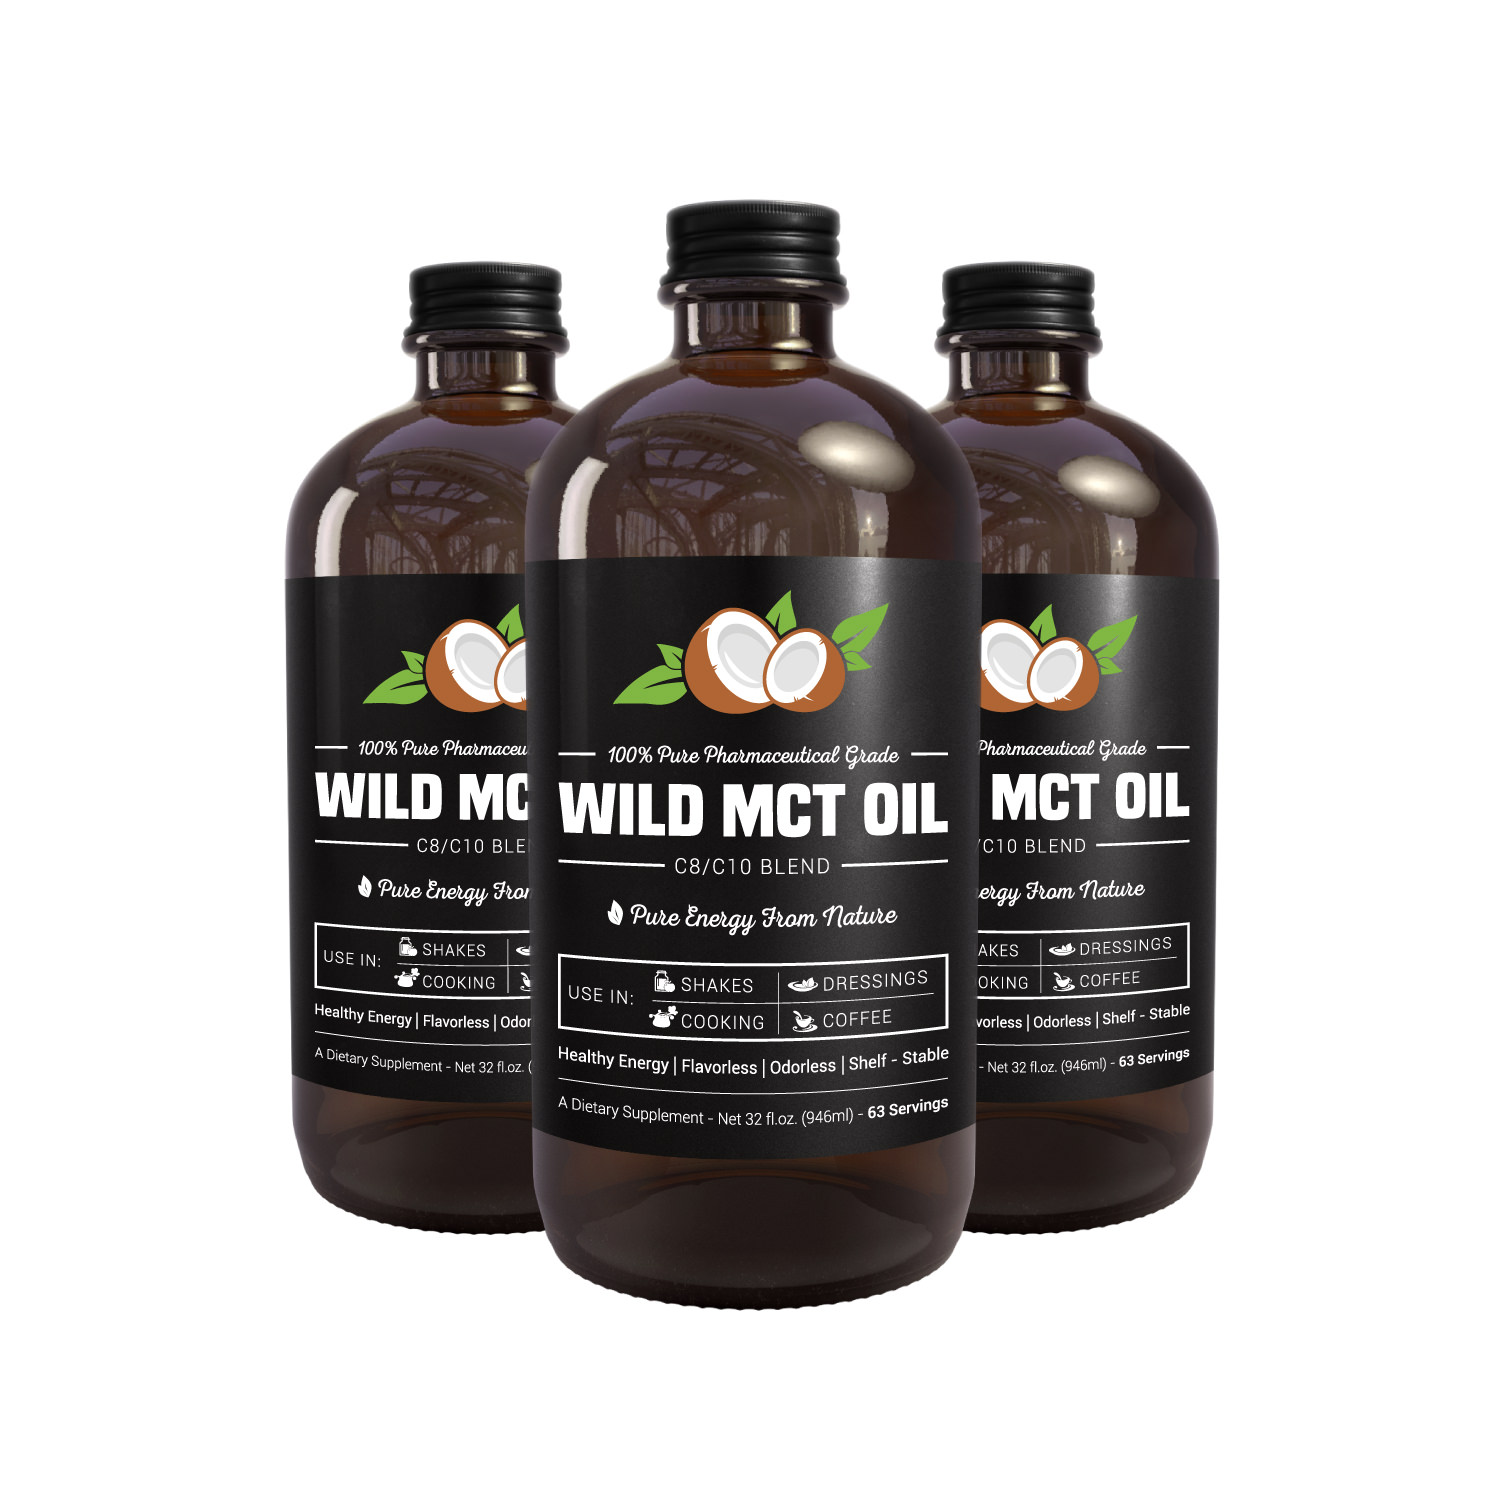 100% Pharmaceutical Grade MCT Oil, Wild MCT, Made in USA, 32-fluid Oz Glass bottle, Guaranteed Quality, C8/C10 Blend, Great For Smoothies, Salads, Coffee, and Shakes